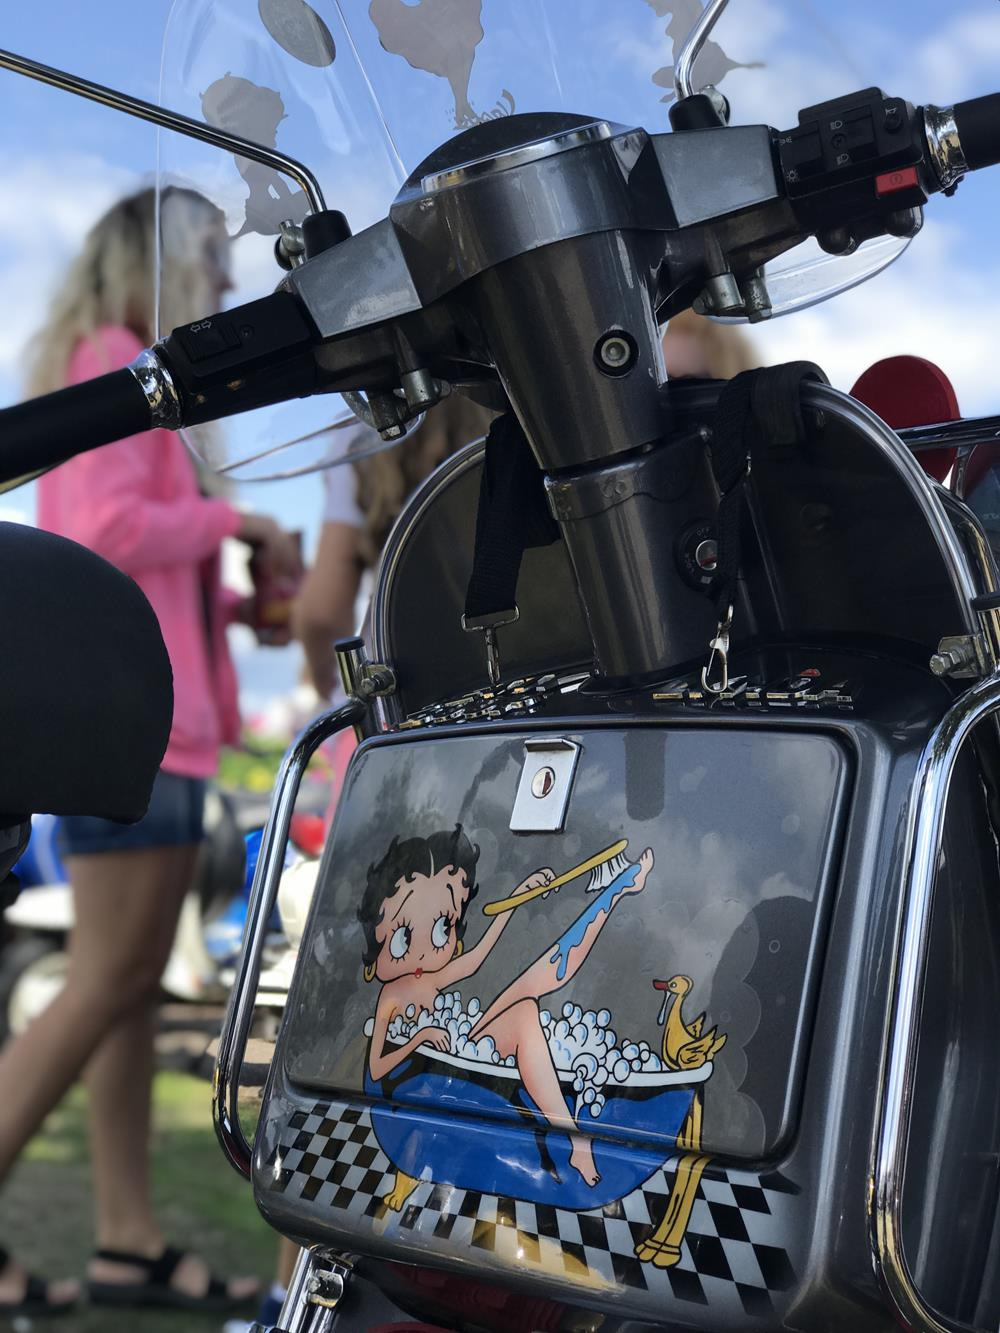 Betty Boop mural on a Vespa toolbox